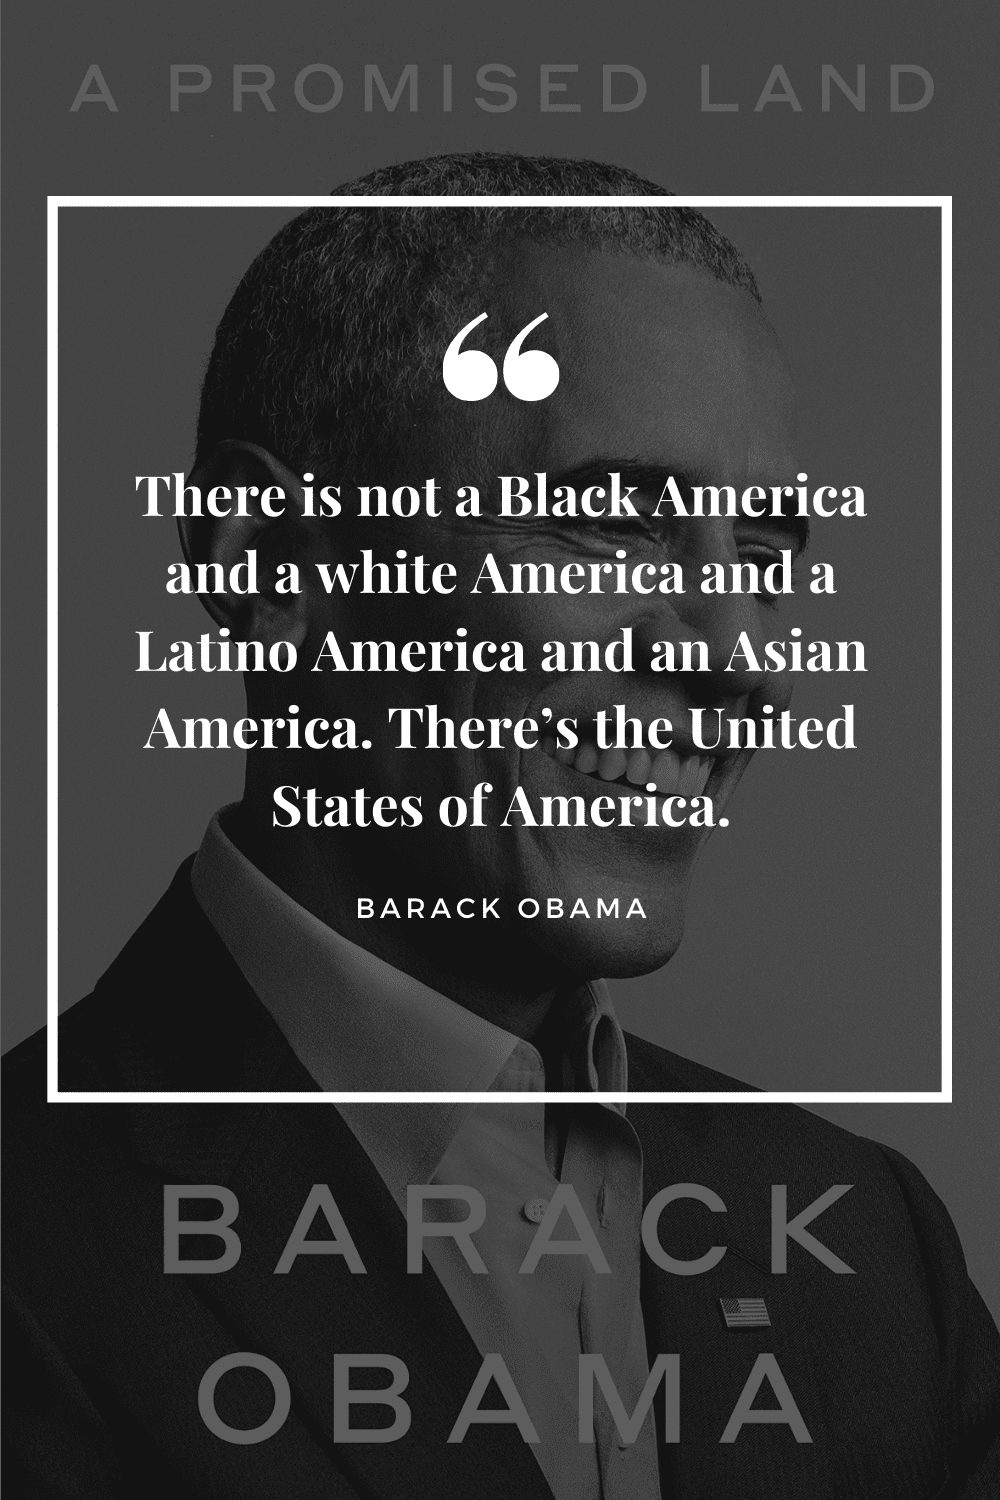 30 Quotes from A Promised Land by Barack Obama